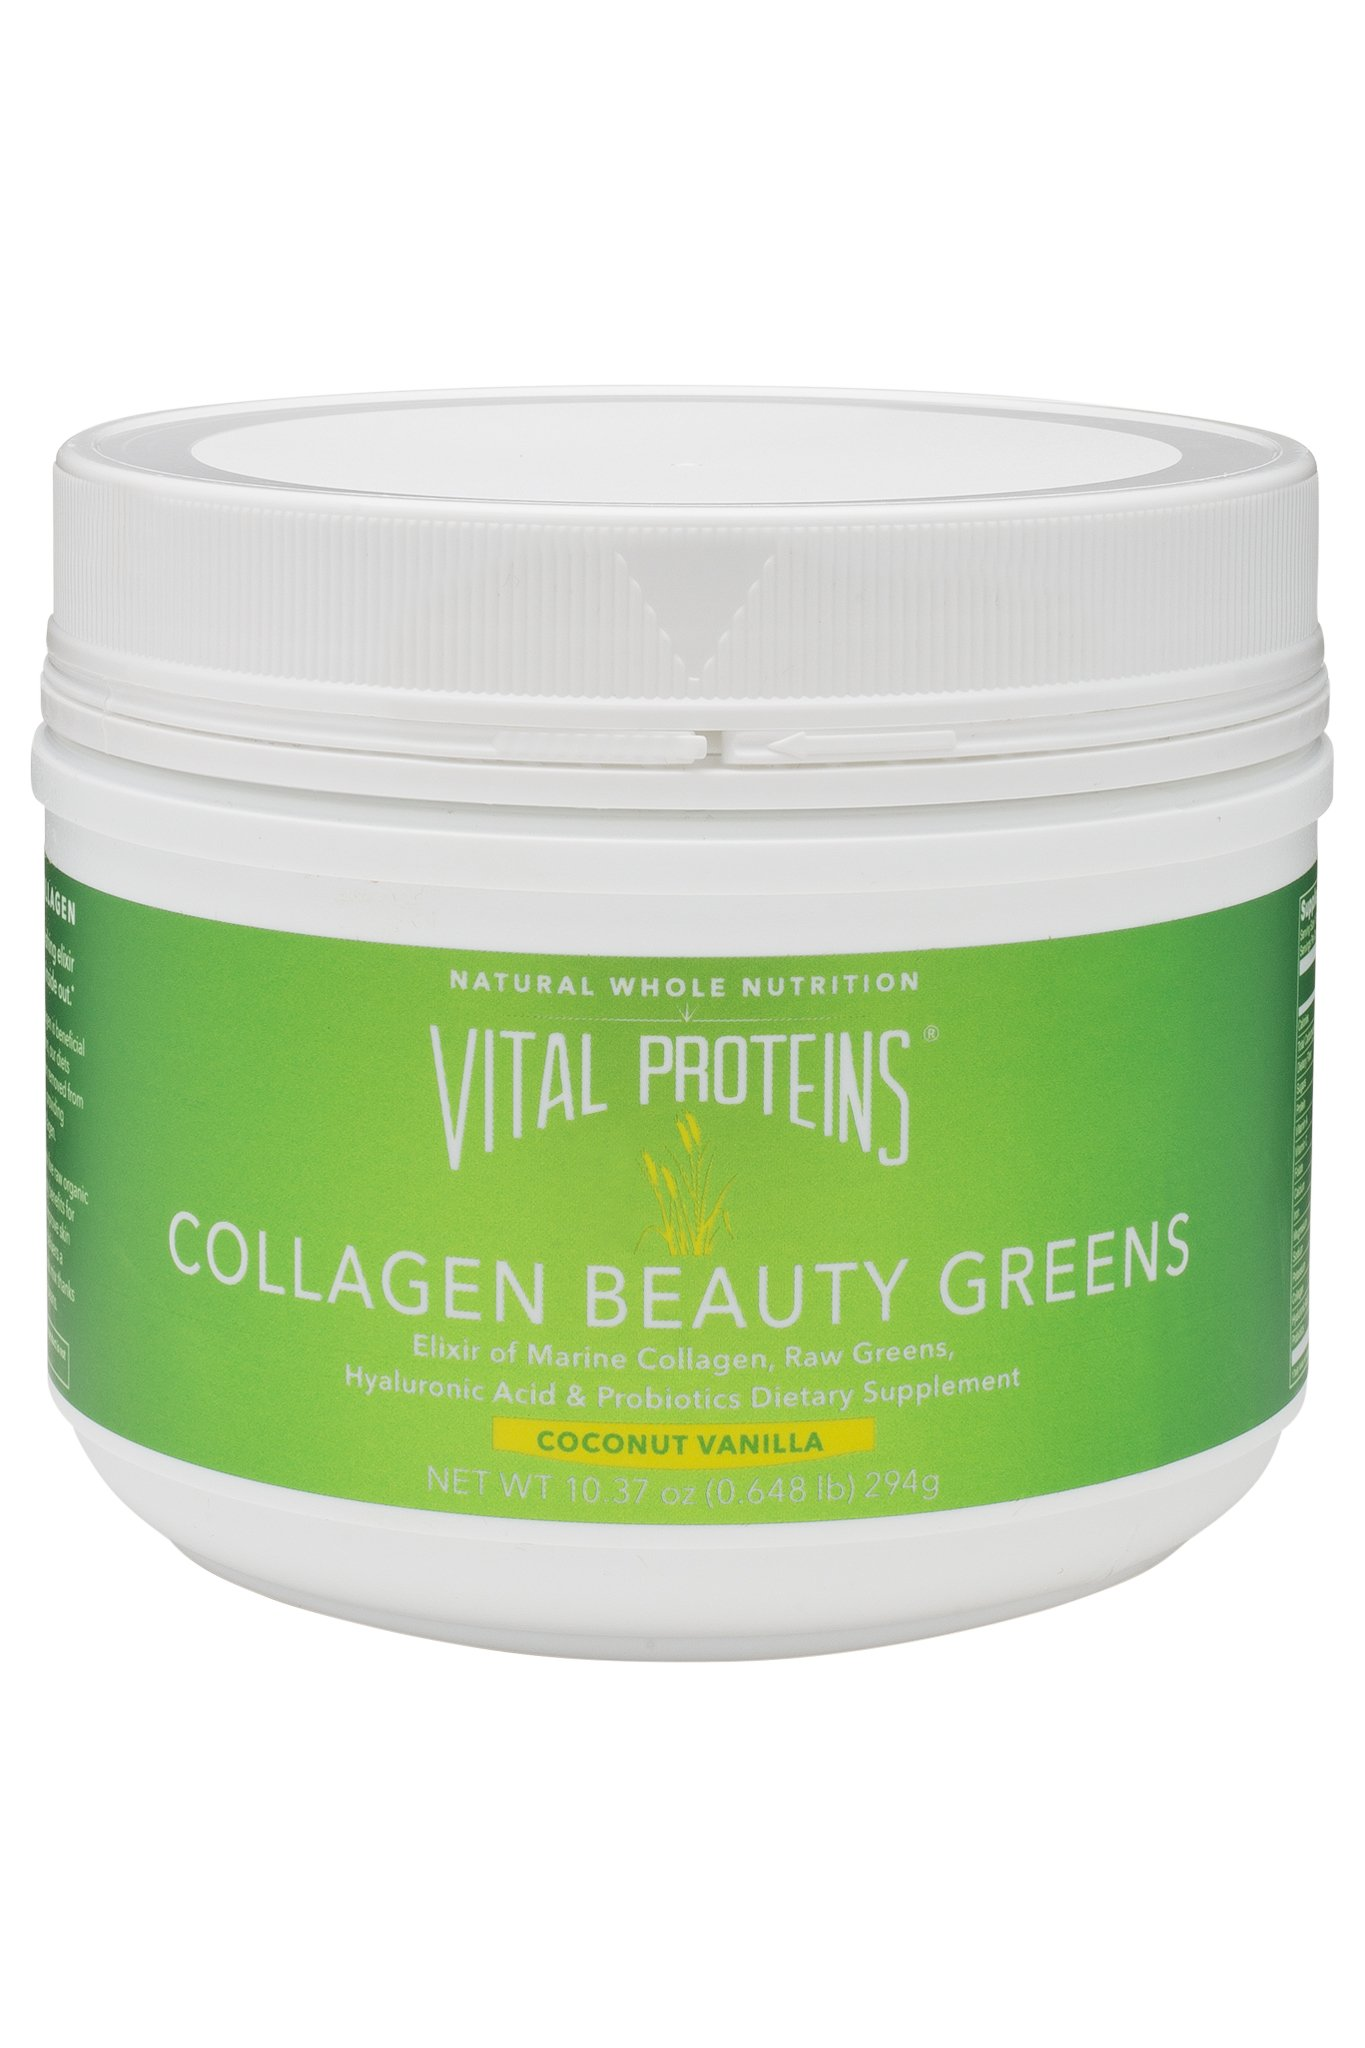 Vital Proteins Collagen Beauty Greens (10.37 oz)